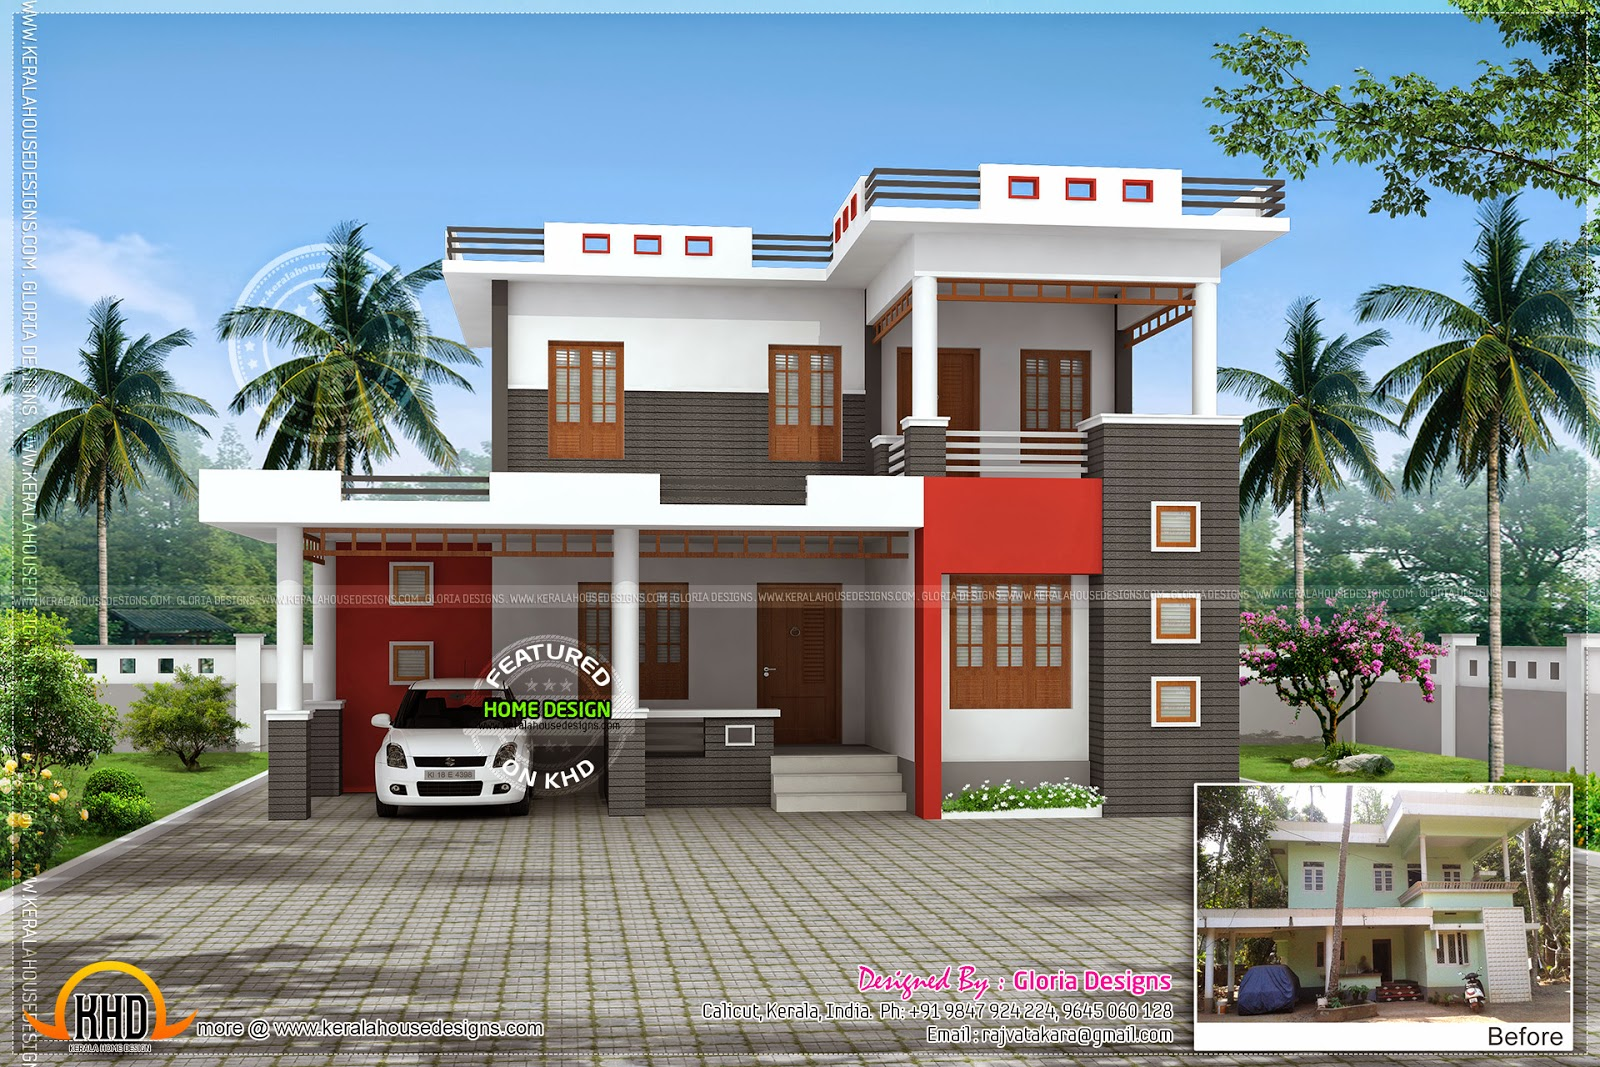 Renovation 3d model for an old house kerala home design for Model home plans